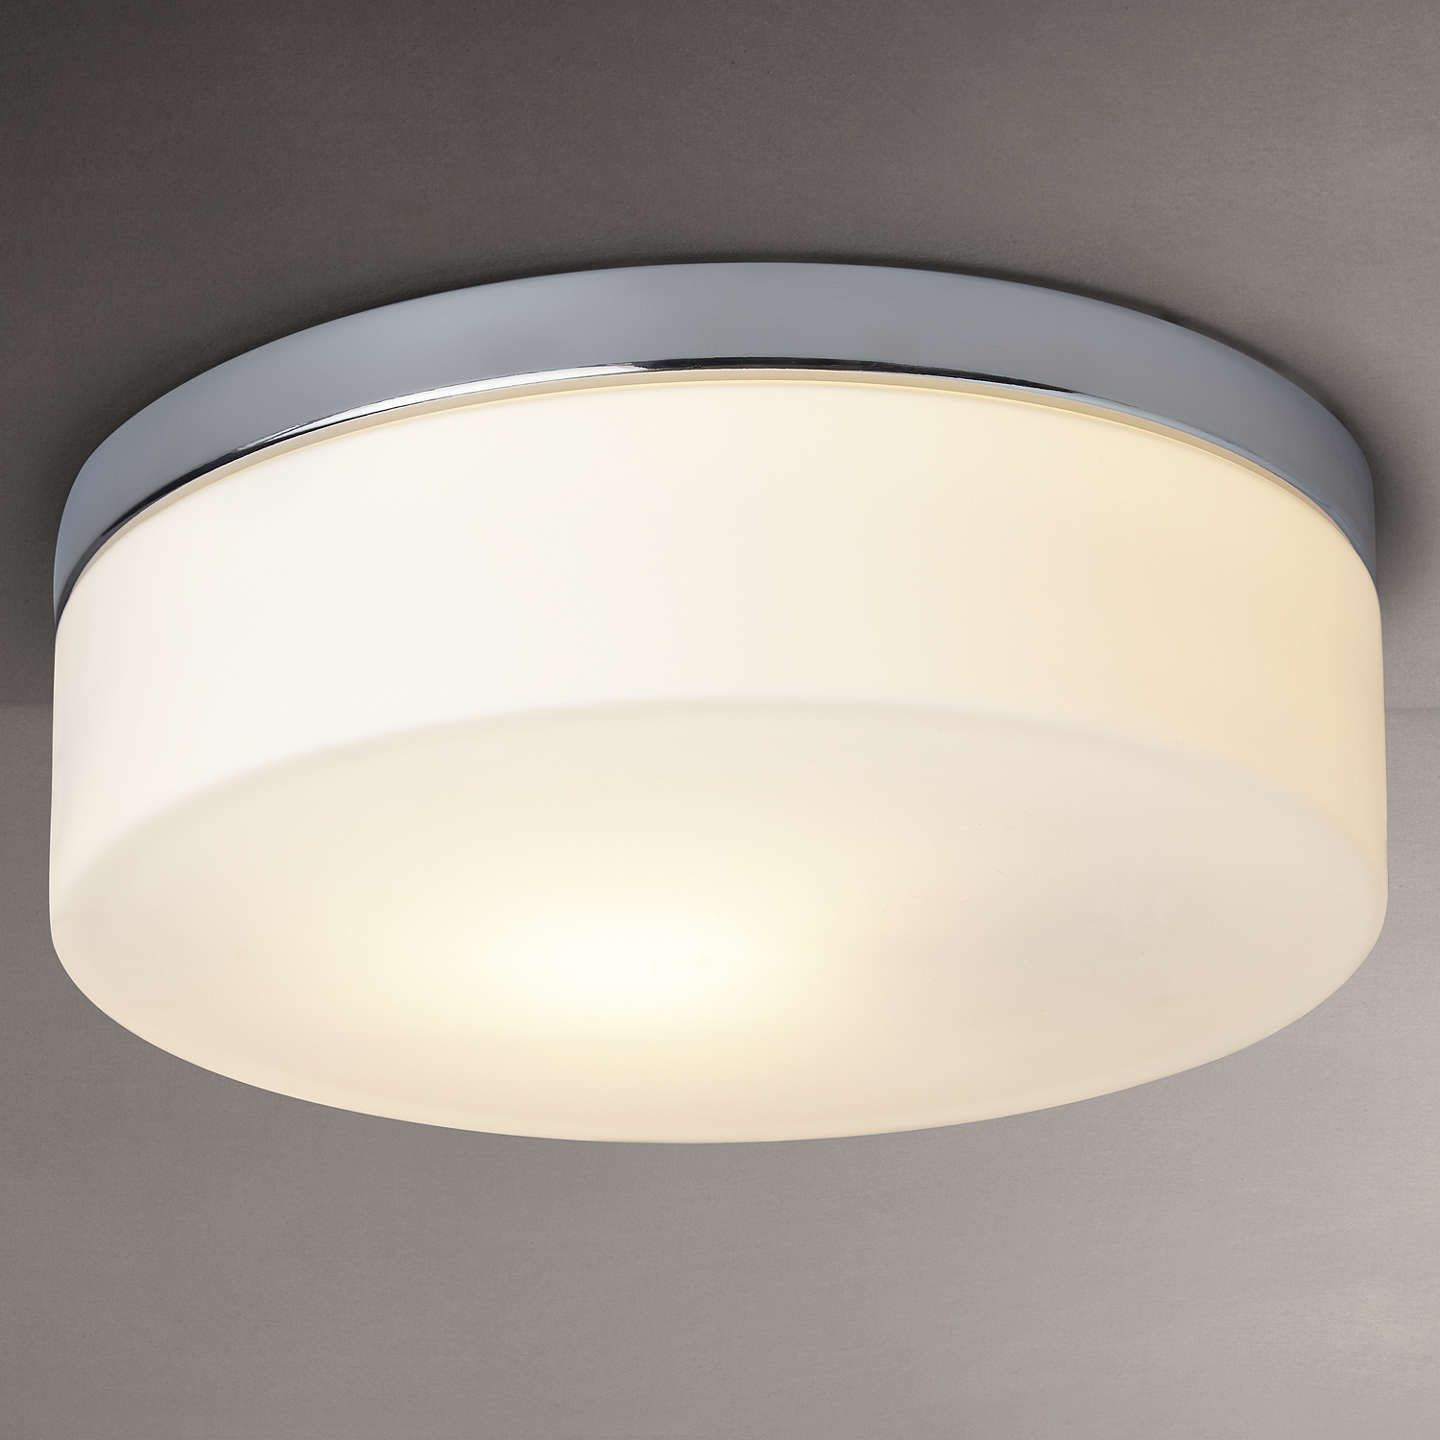 ASTRO Sabina Round Flush Bathroom Ceiling Light